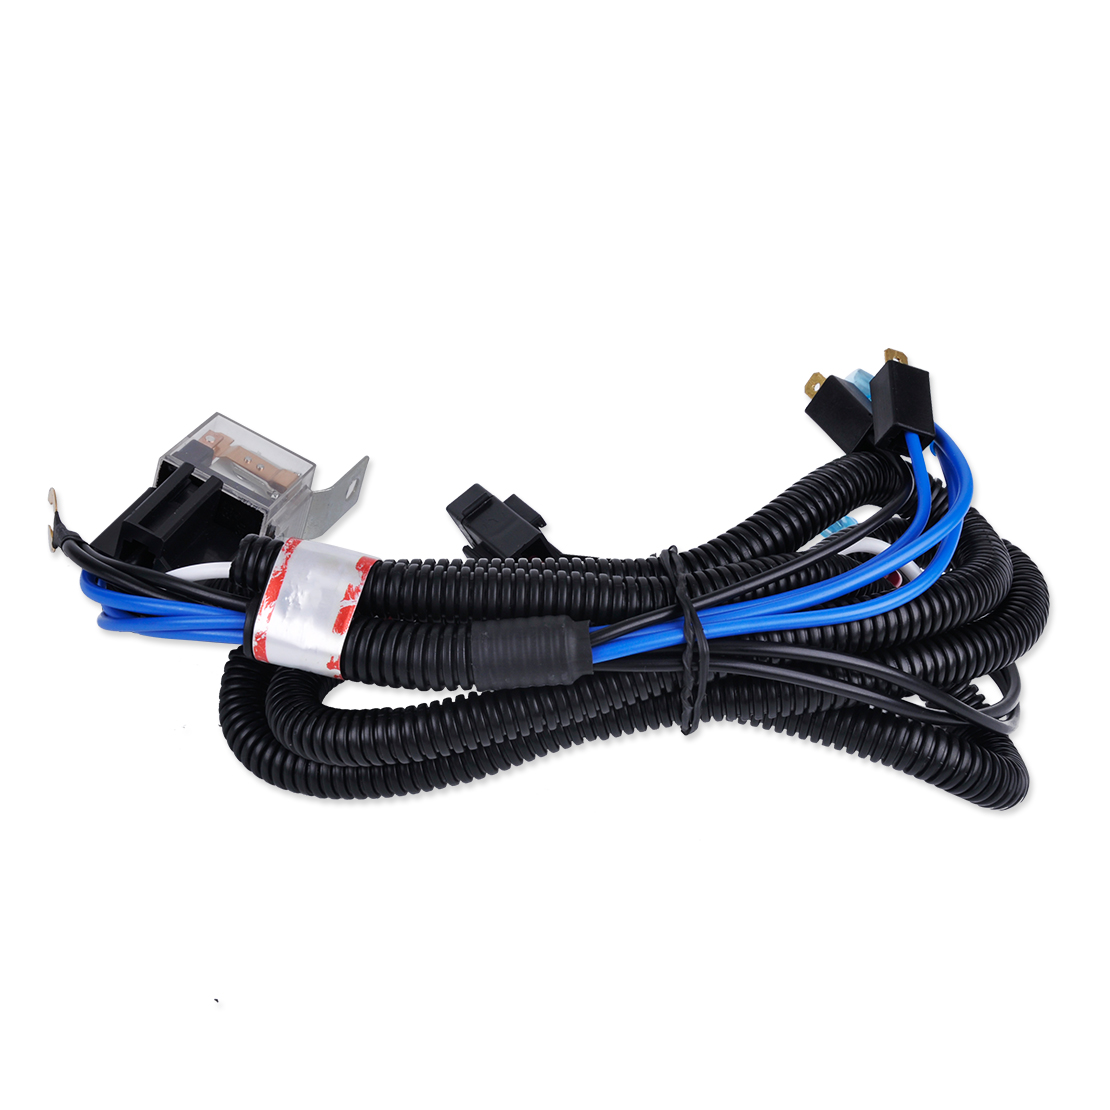 CITALL 12V Car Auto Truck Grille Mount Blast Tone Horn Wiring Harness Relay Kit citall 12v car auto truck grille mount blast tone horn wiring  at gsmportal.co